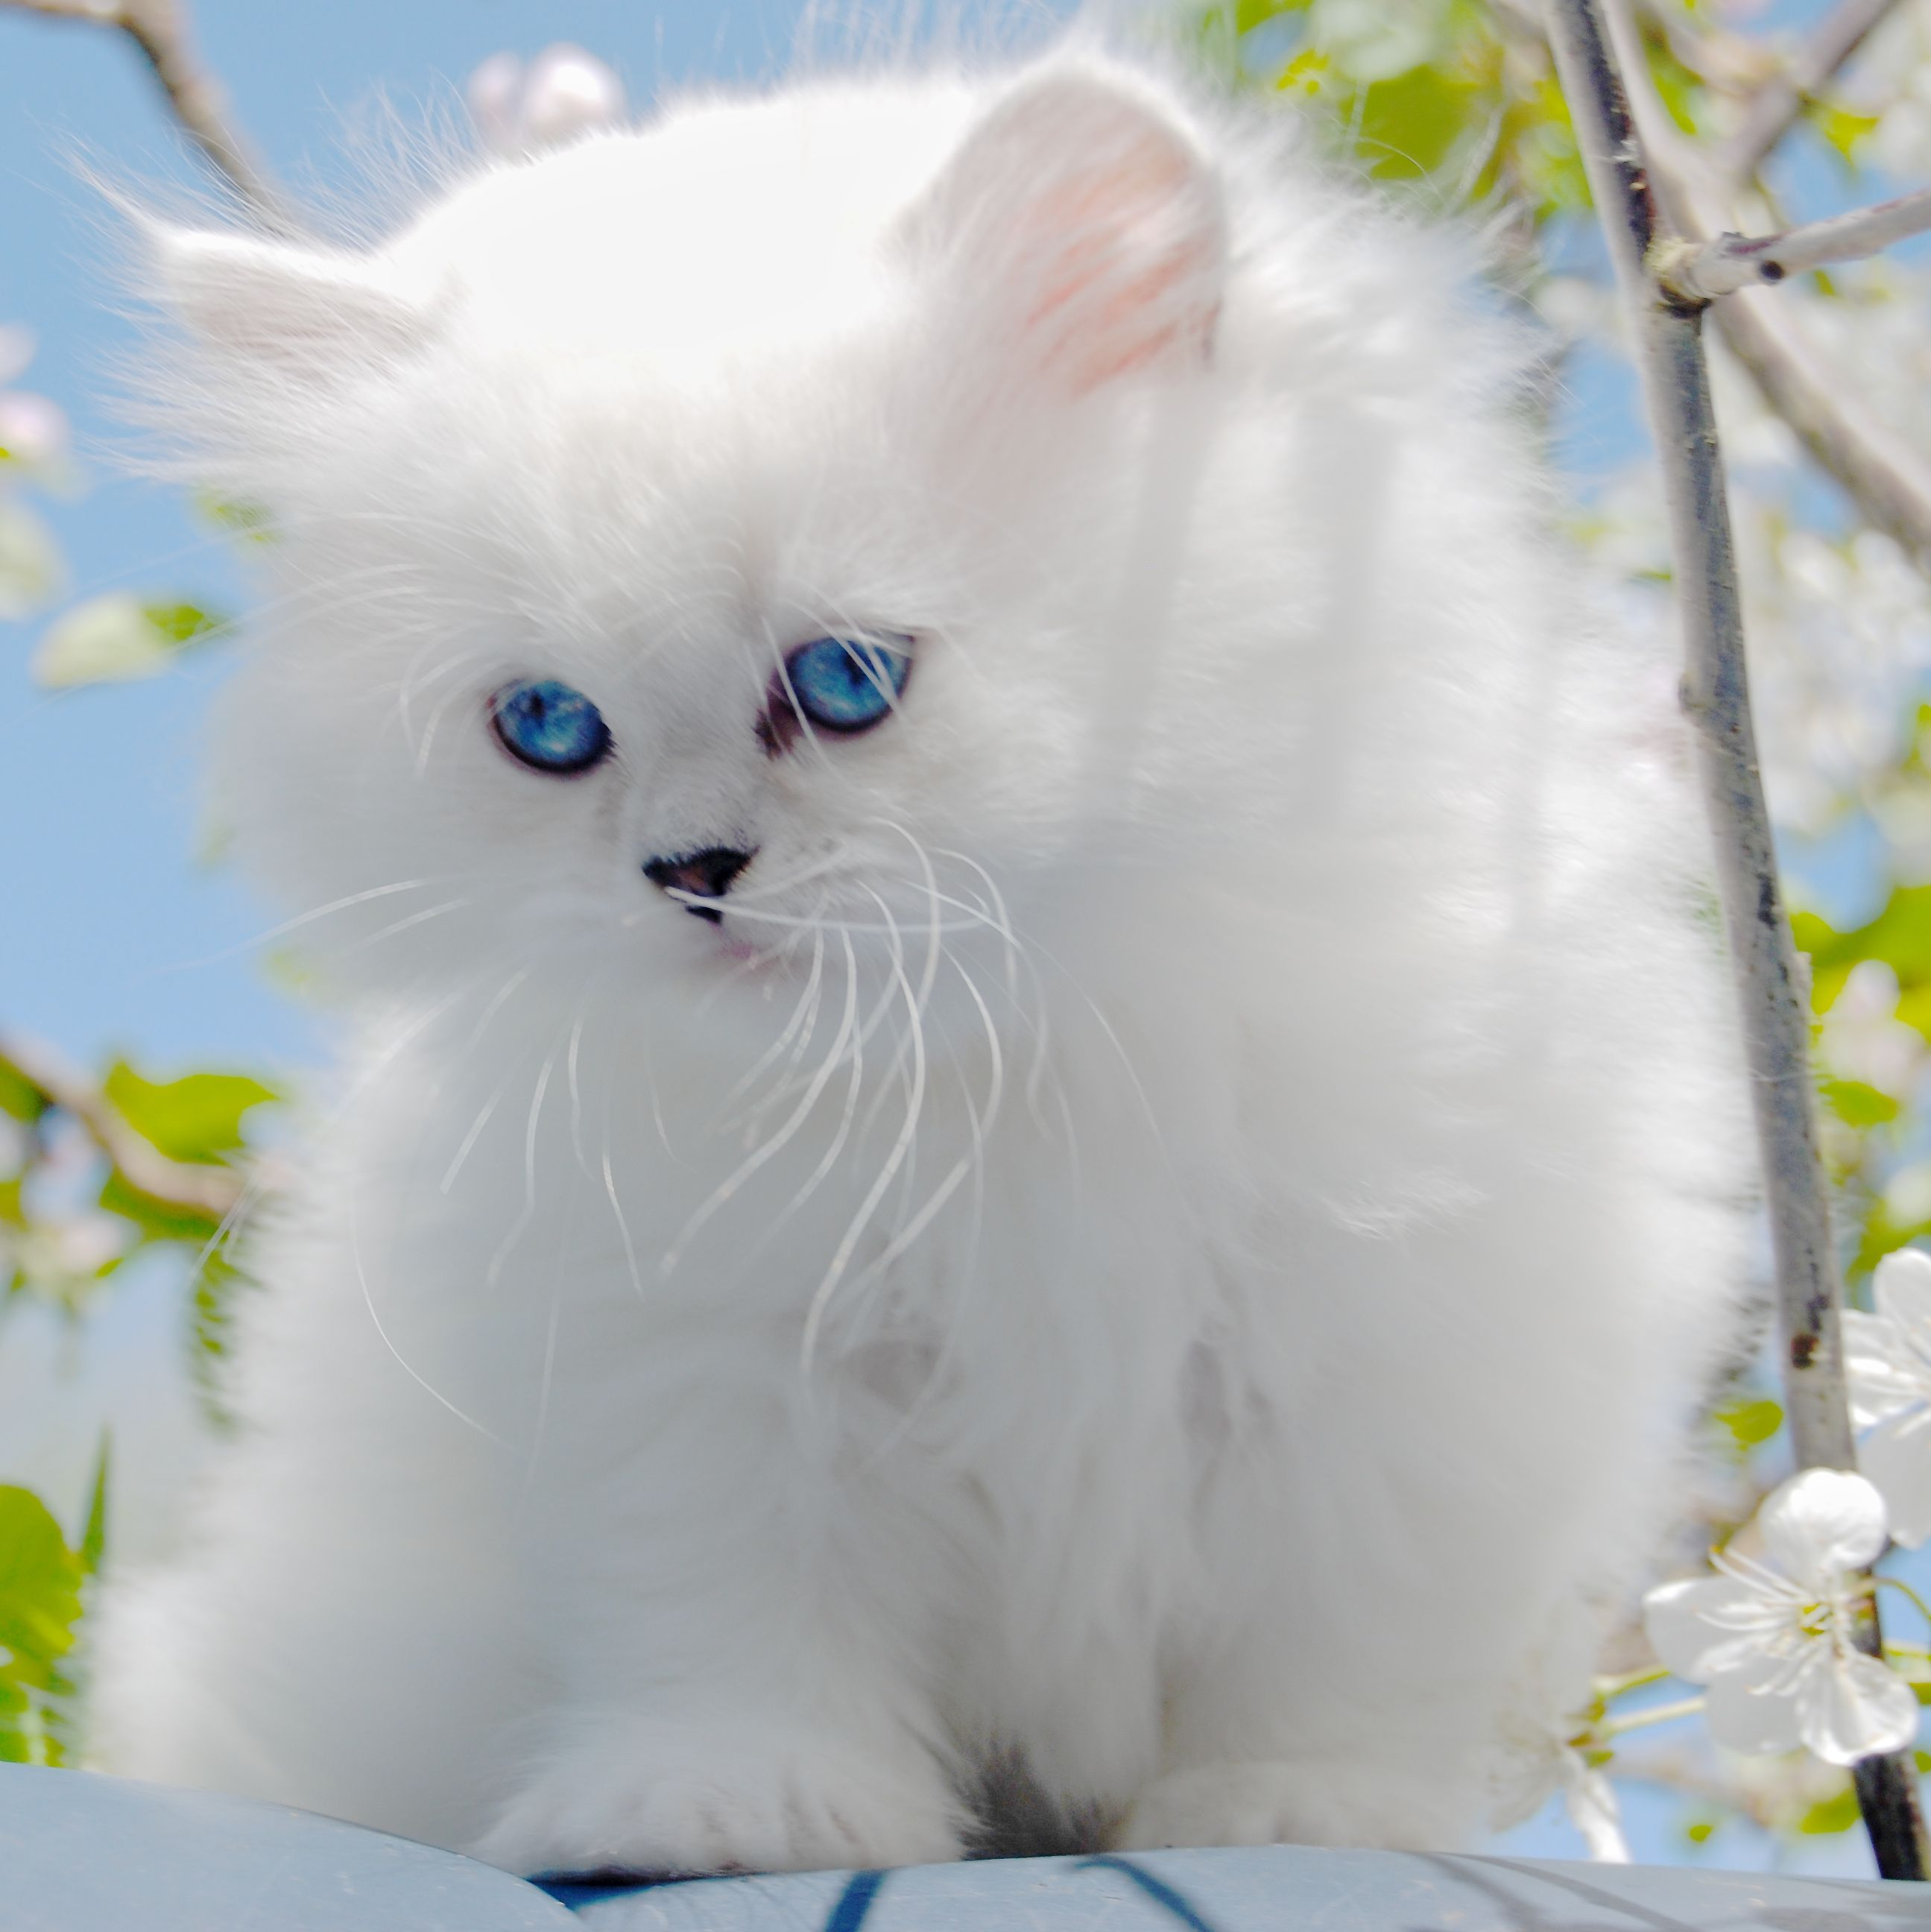 Belle Ayr Snow Lily Our Silver Shaded British Longhair Ns1133 Blh Cute Cats And Dogs British Shorthair Cats Cats And Kittens